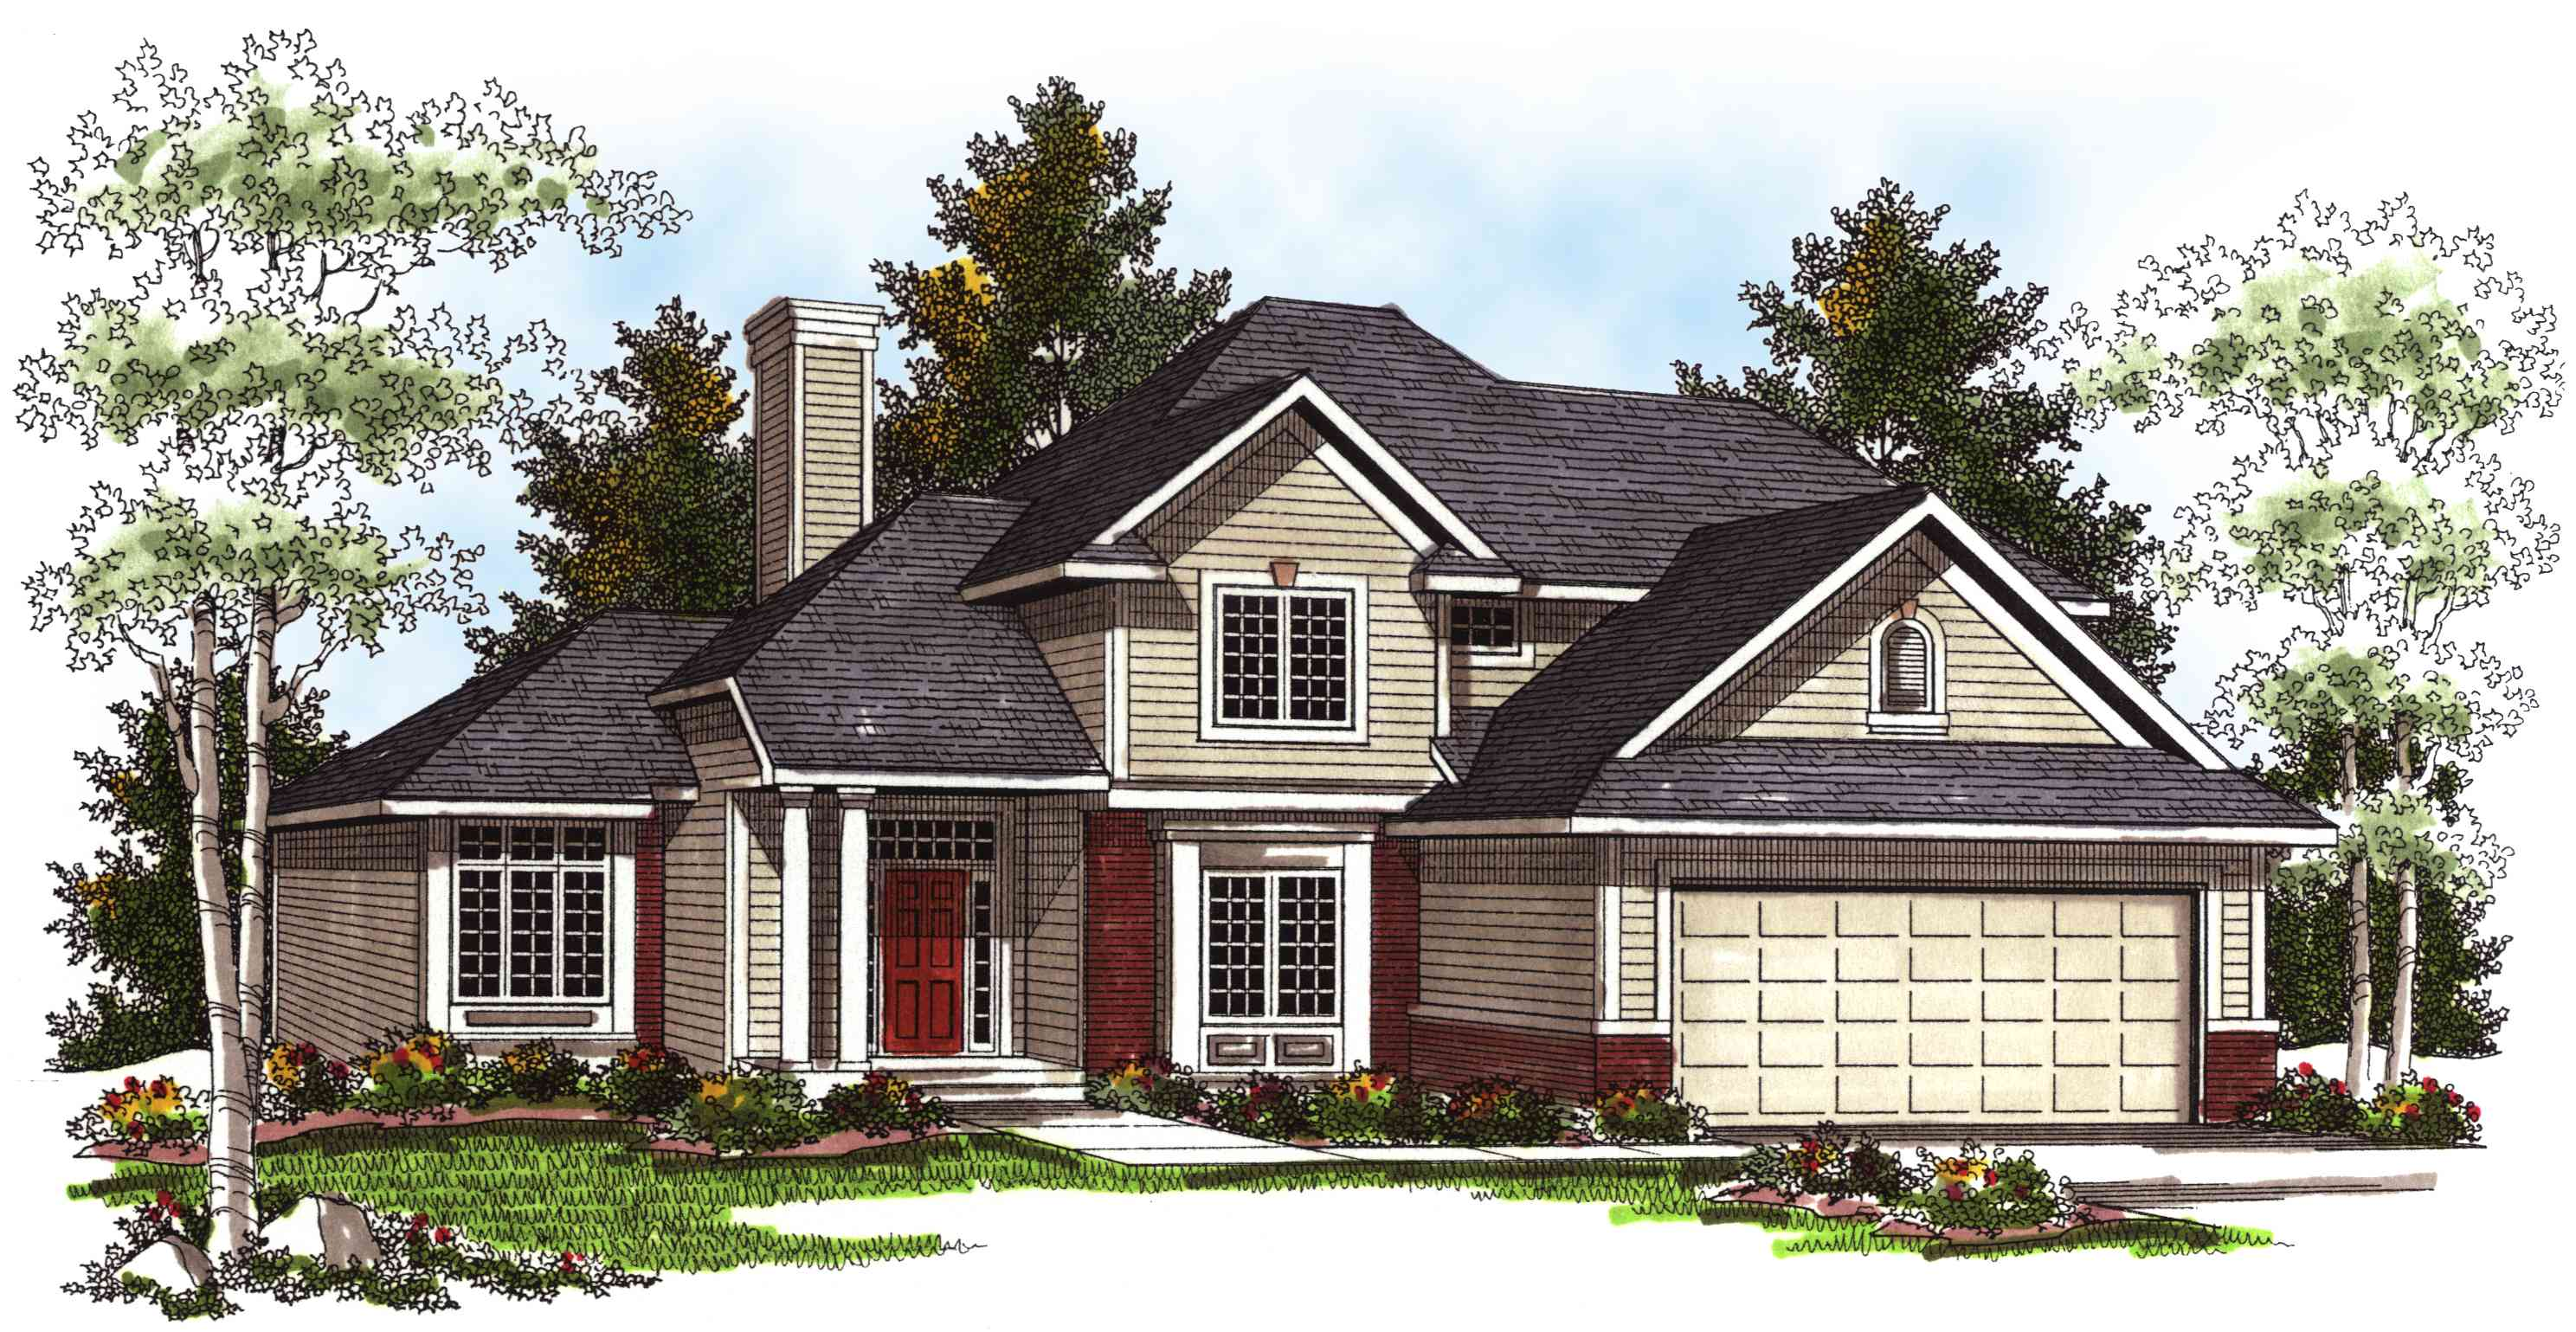 Functional 2 story 4 bedroom home plan 89562ah for Functional house plans